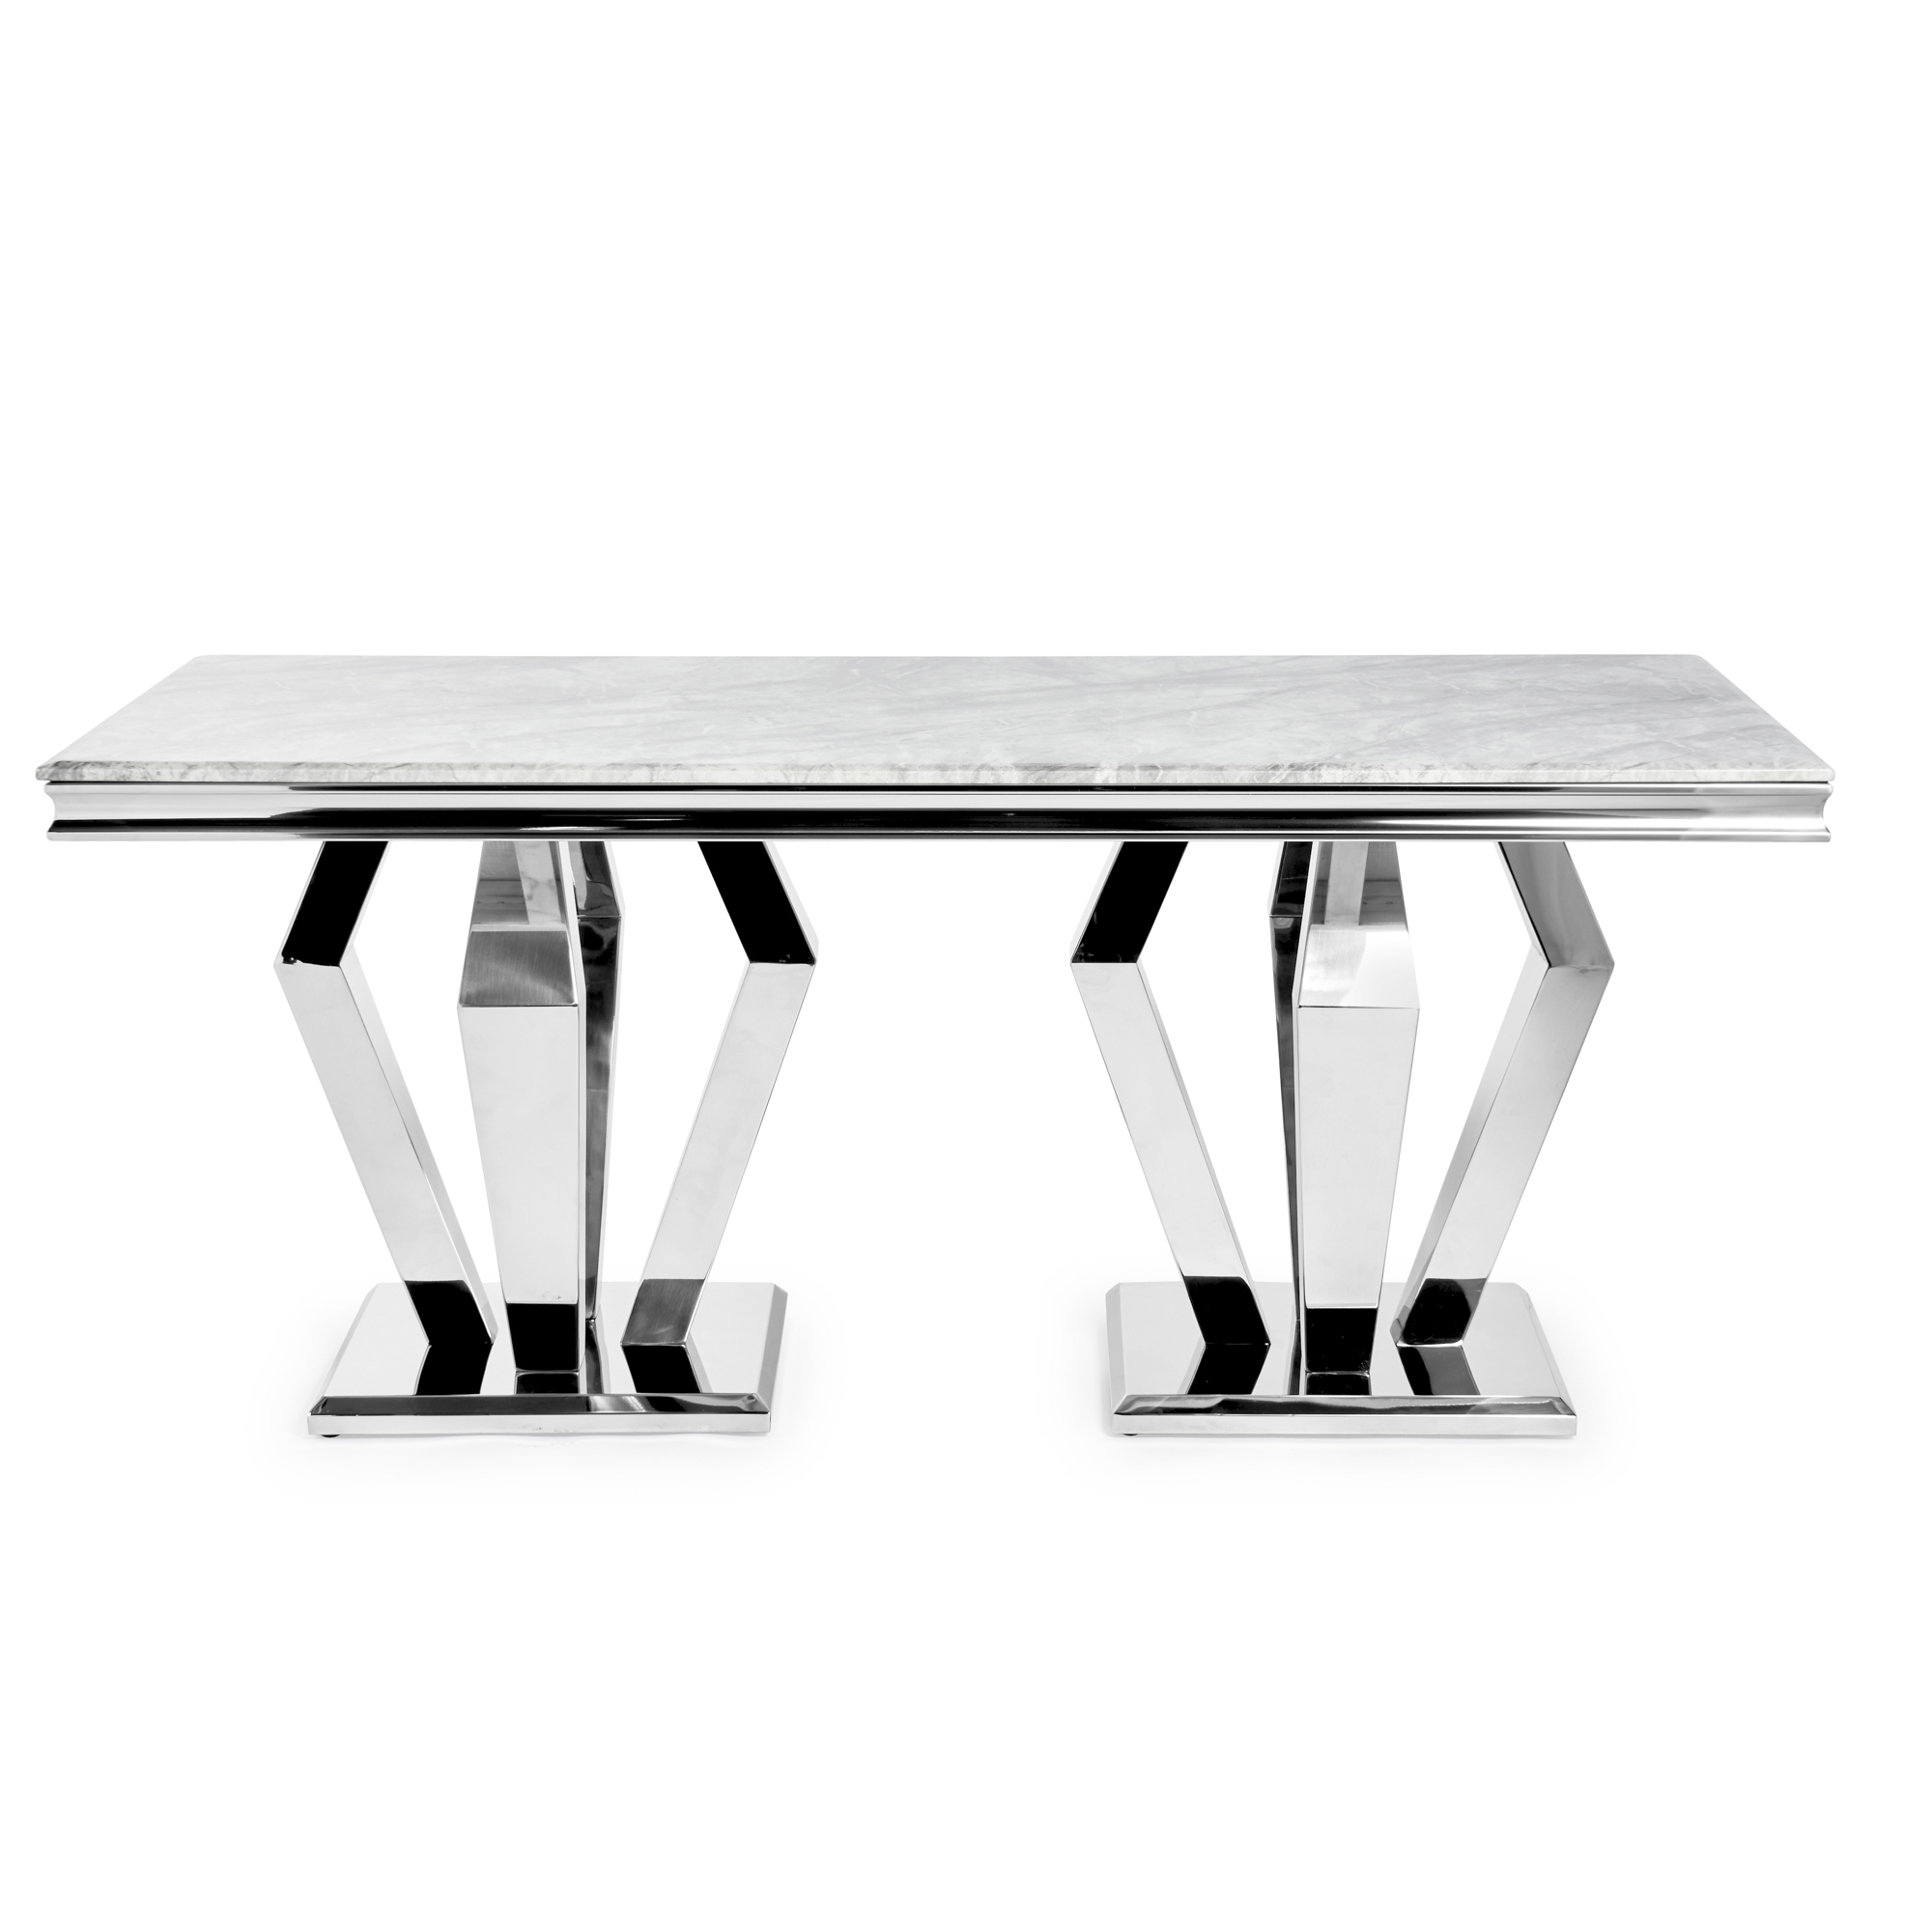 New Sorrento 1.8m Polished Steel Dining Table with a Grey Marble Top